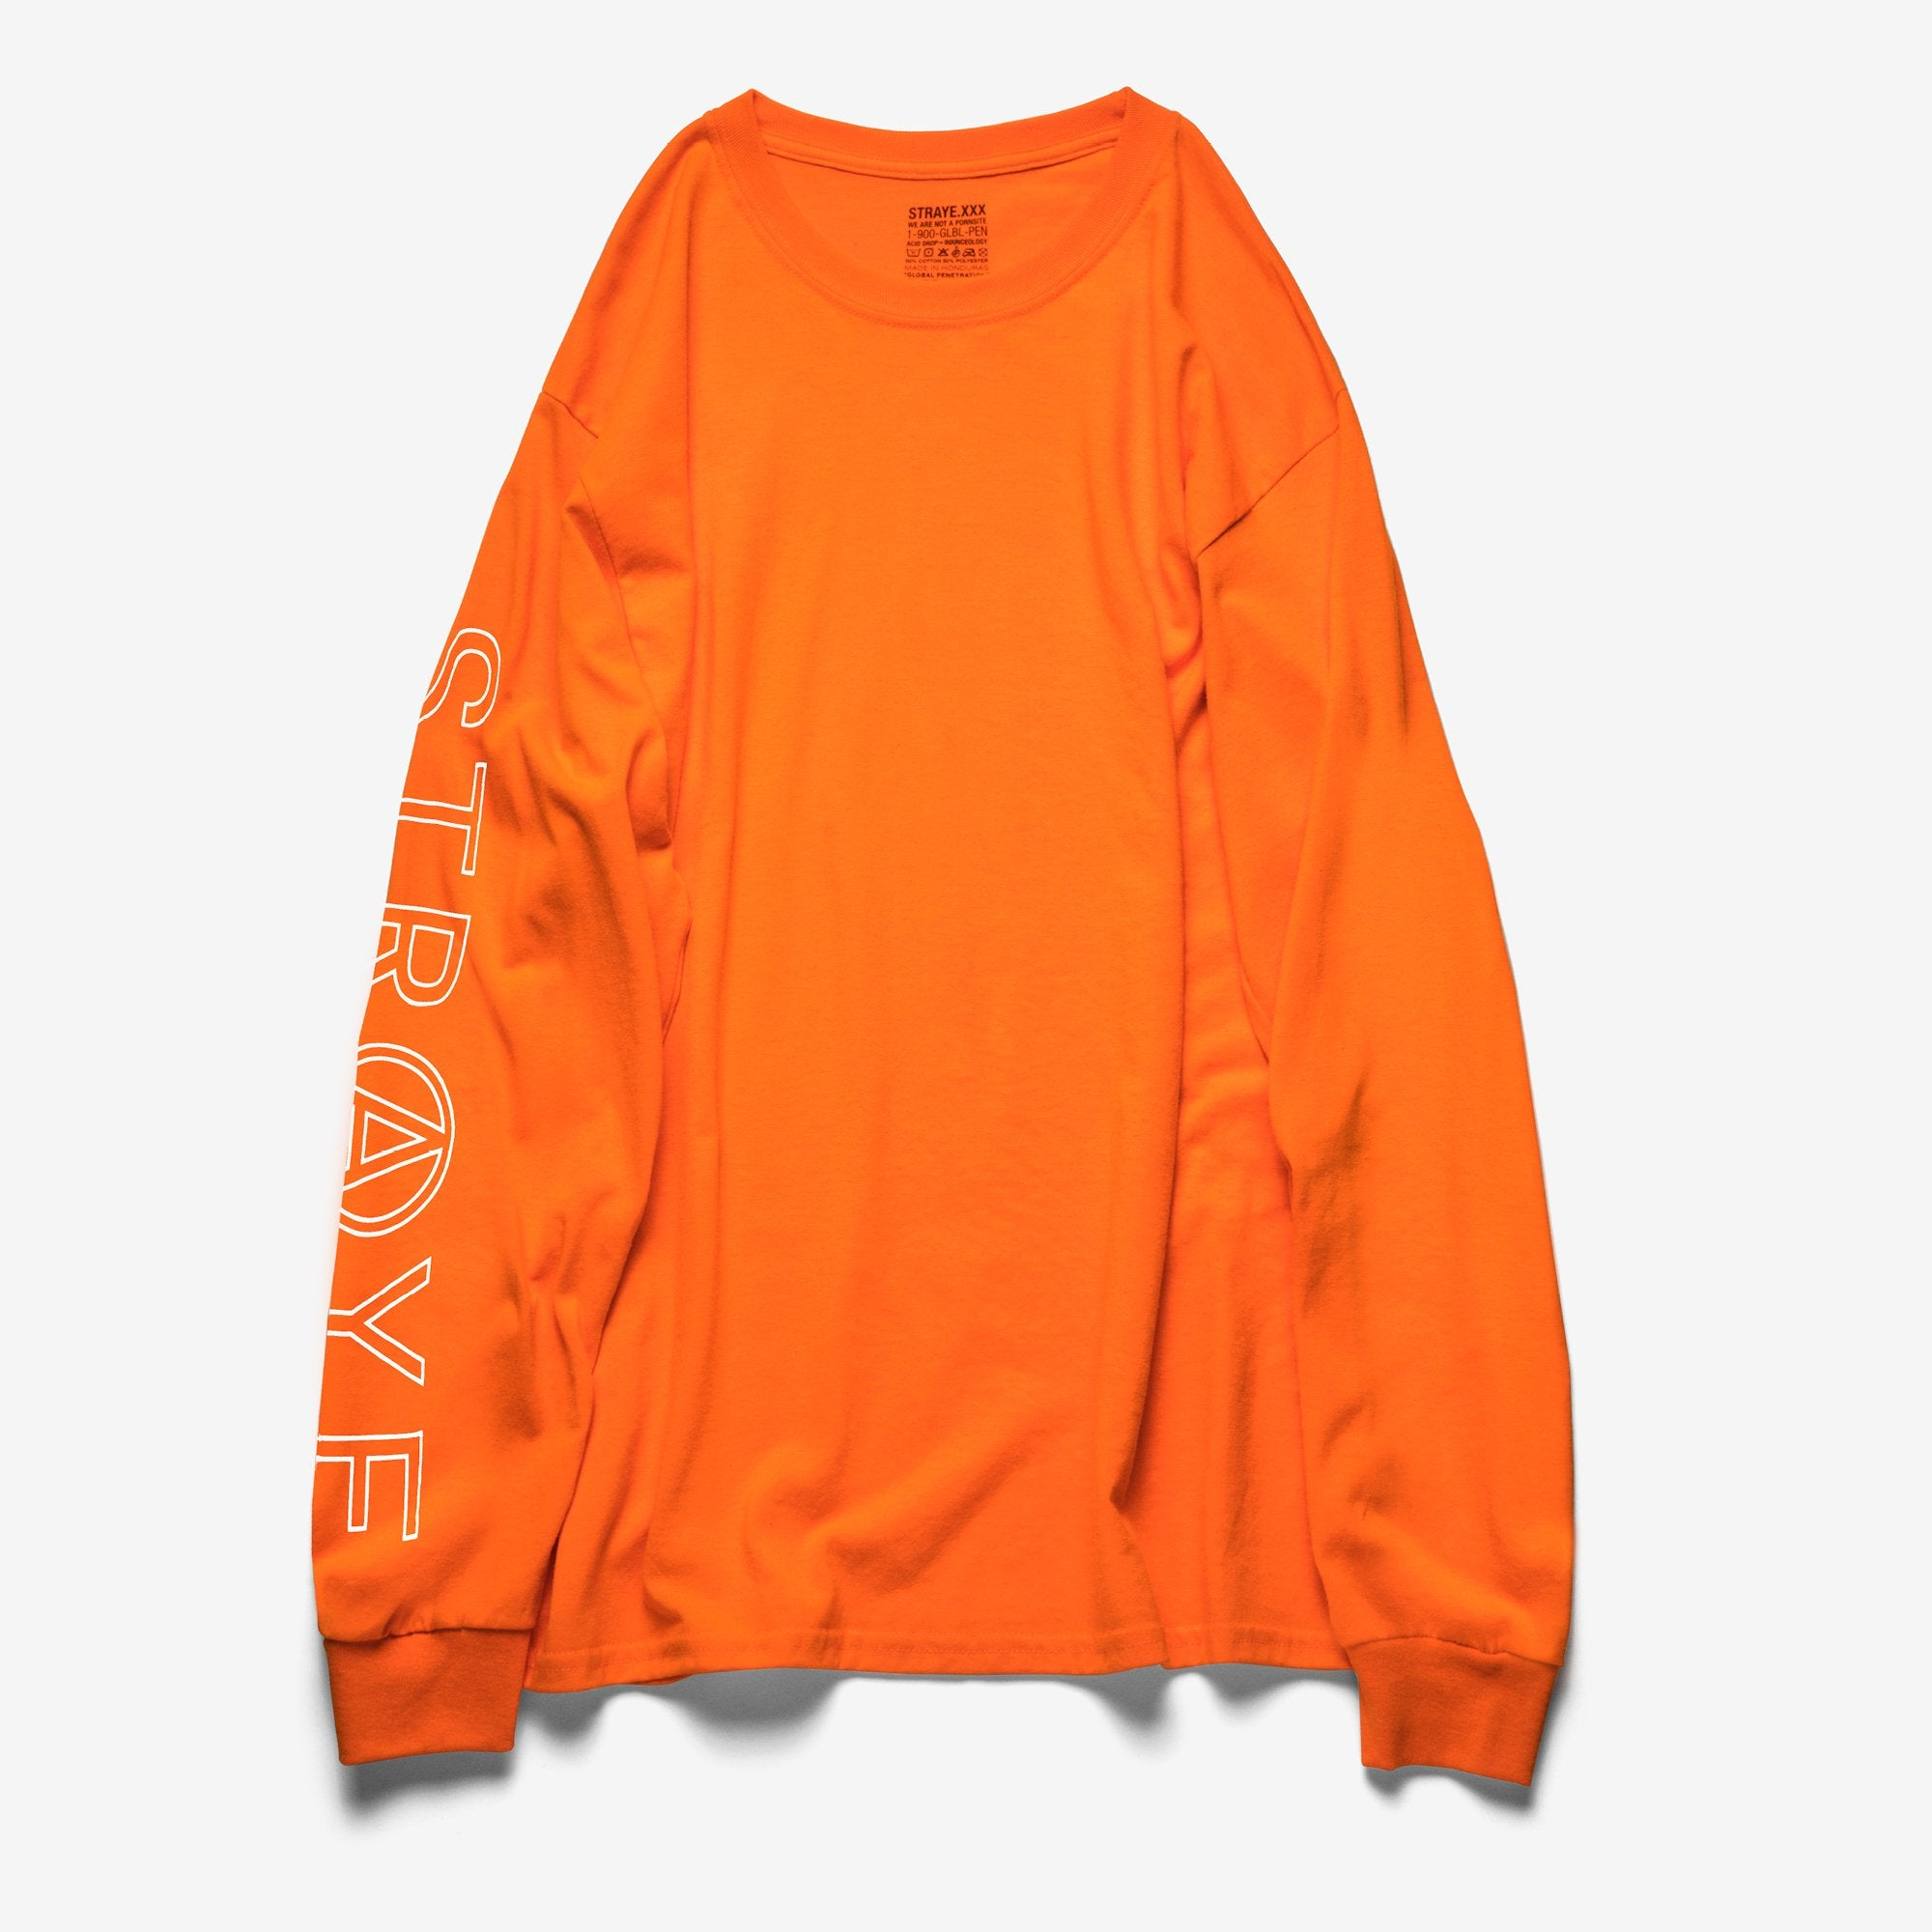 SUPER TRAP L/S T-SHIRT - BURNT ORANGE